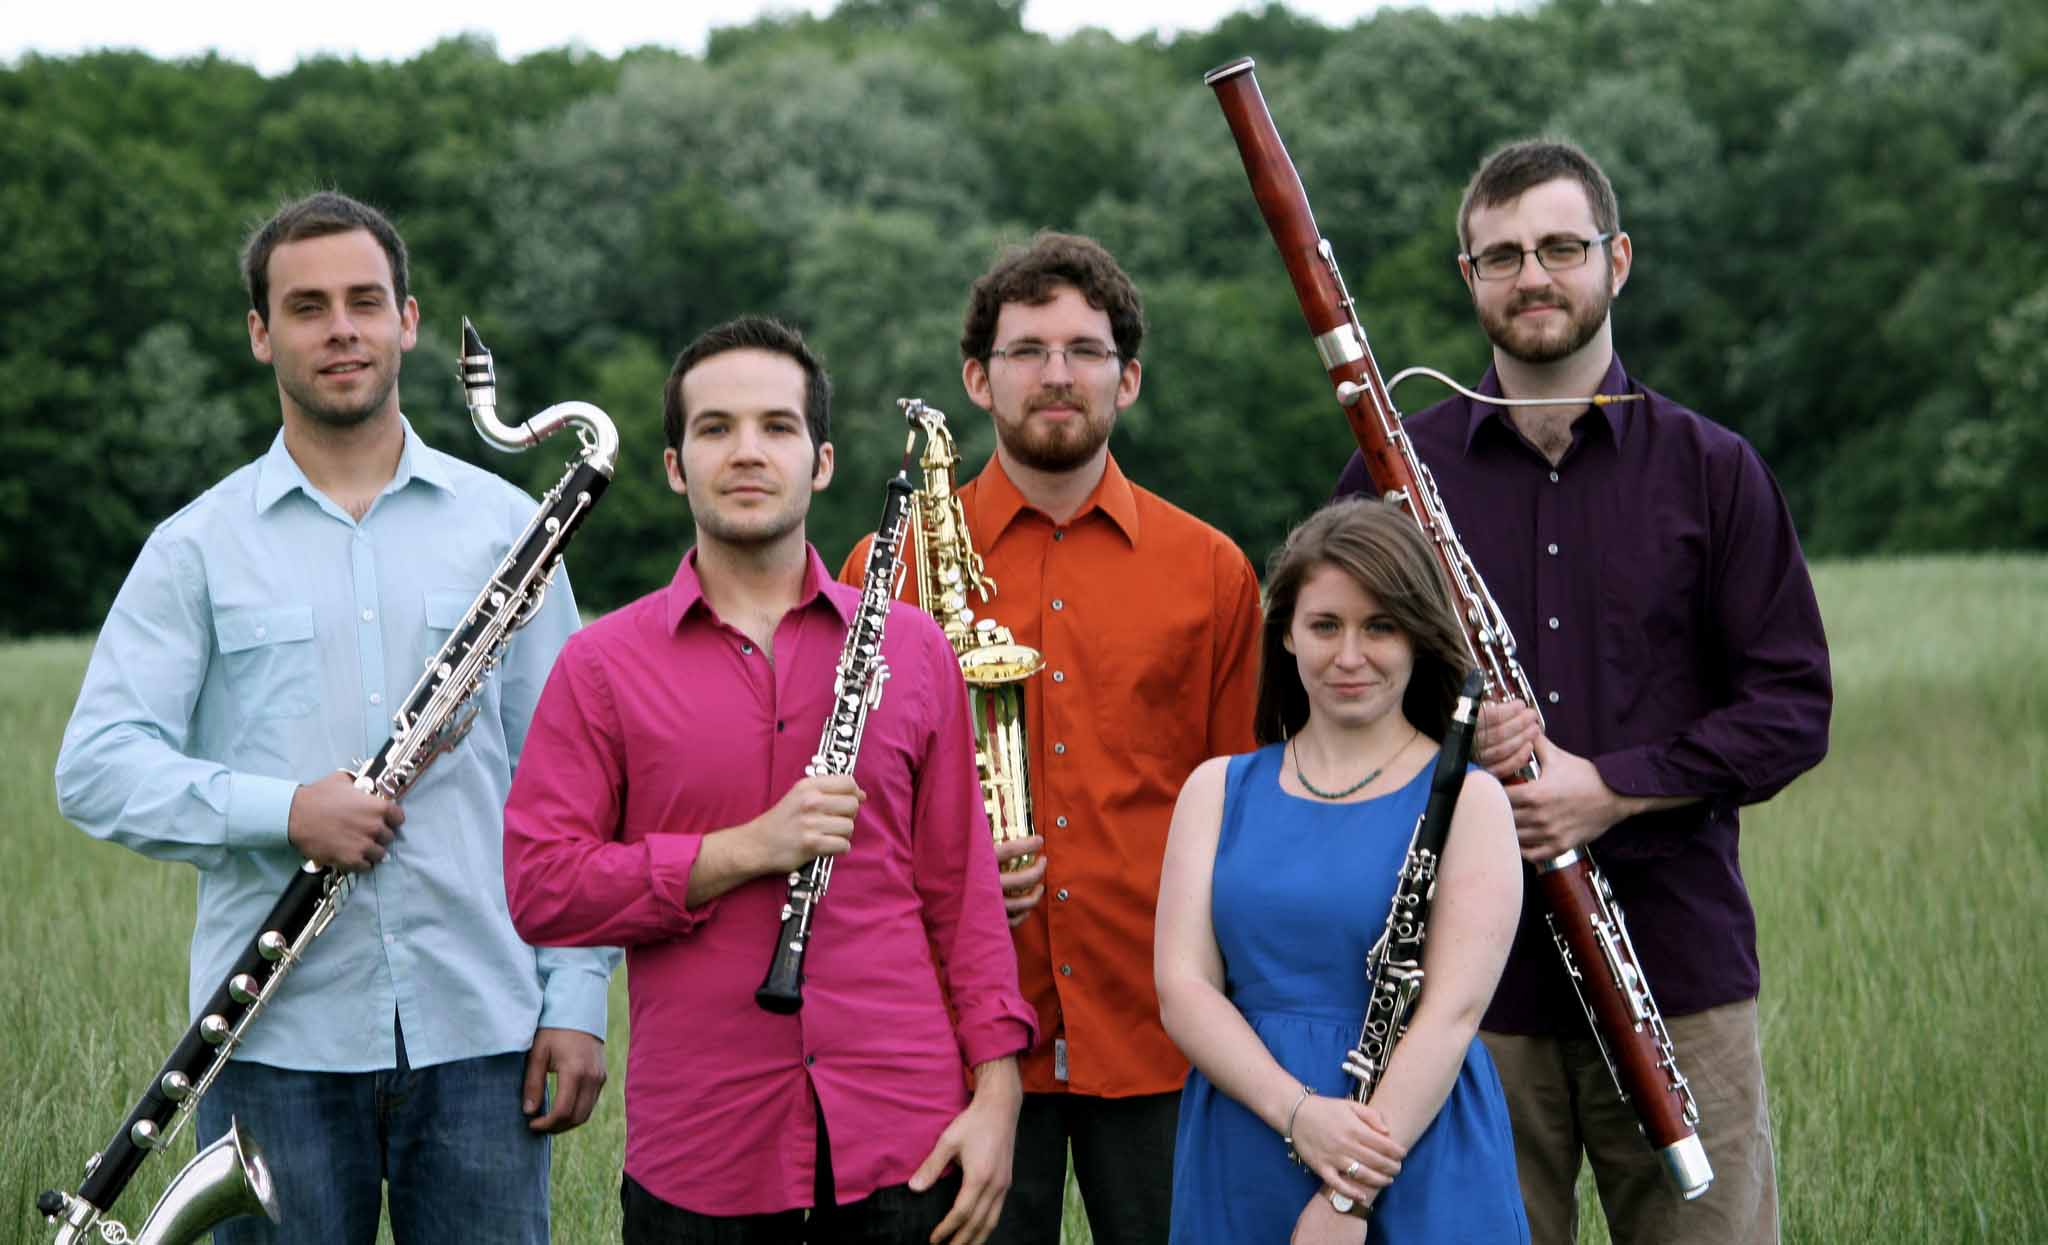 The El Camino College Center for the Arts will present a concert by the award-winning Akropolis Reed Quintet, which will perform at 8 p.m. Nov. 14 in Marsee Auditorium.